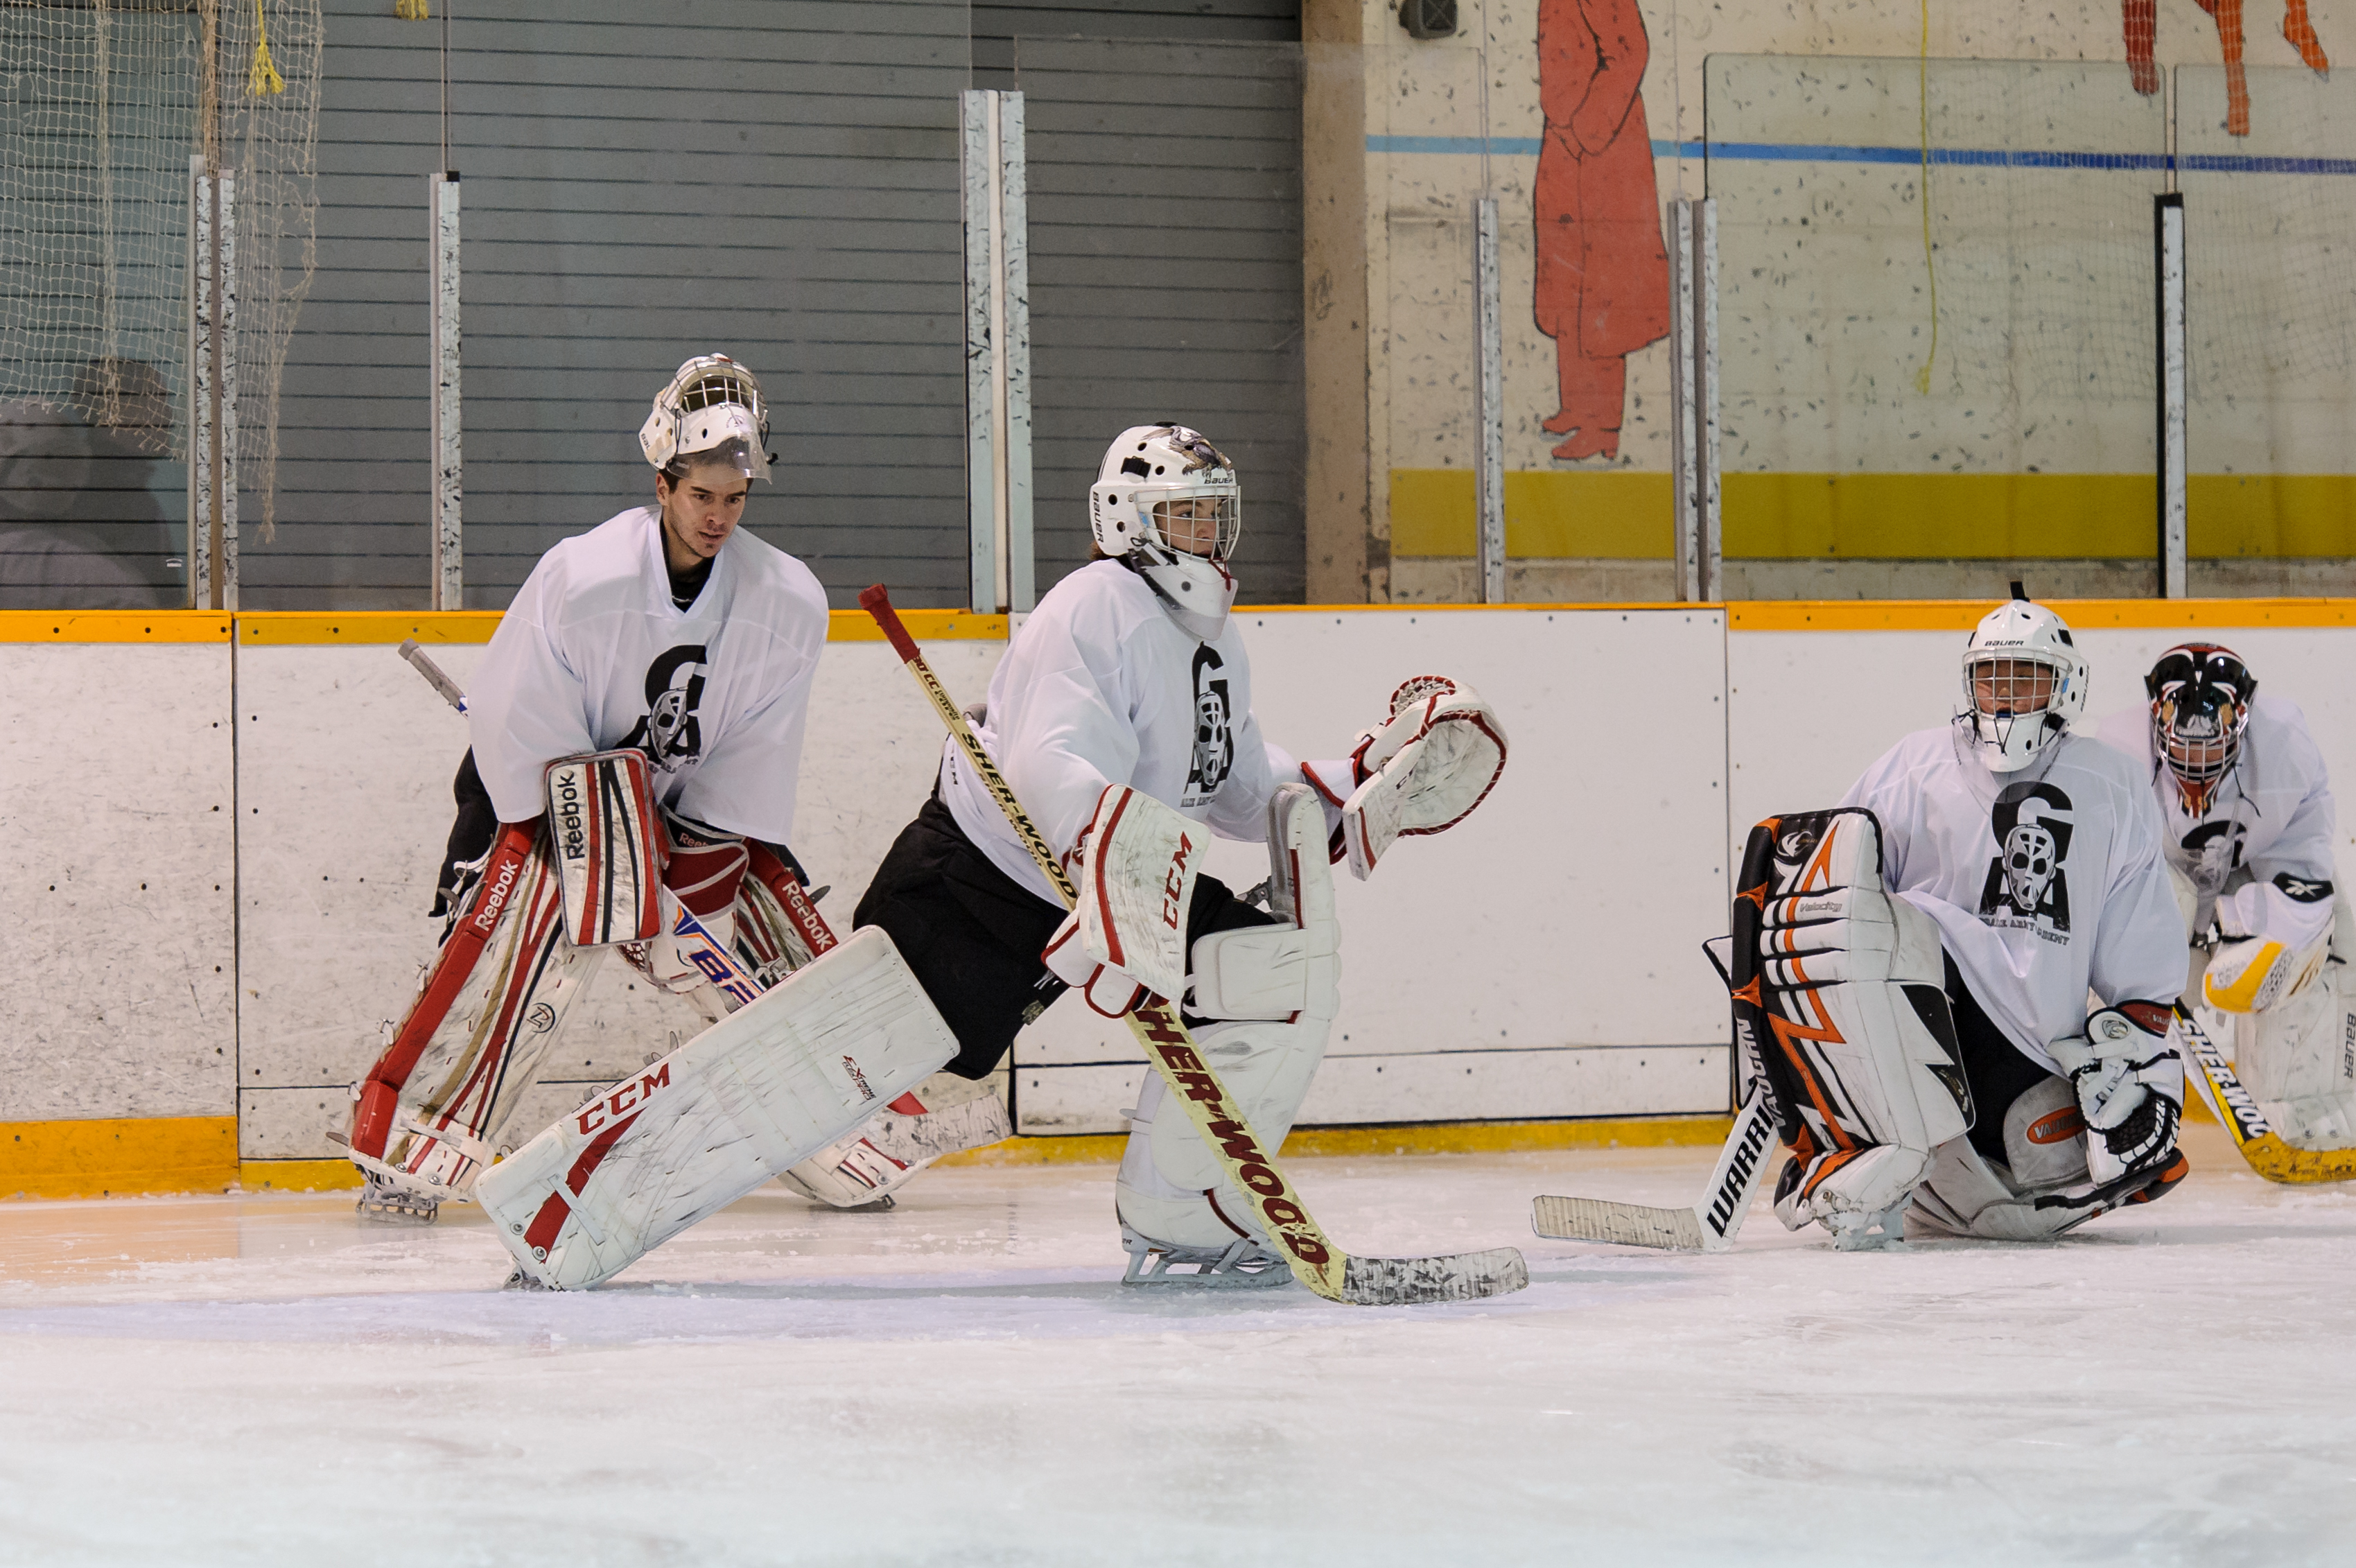 News Gaahockey Elite Ottawa Goalie Training